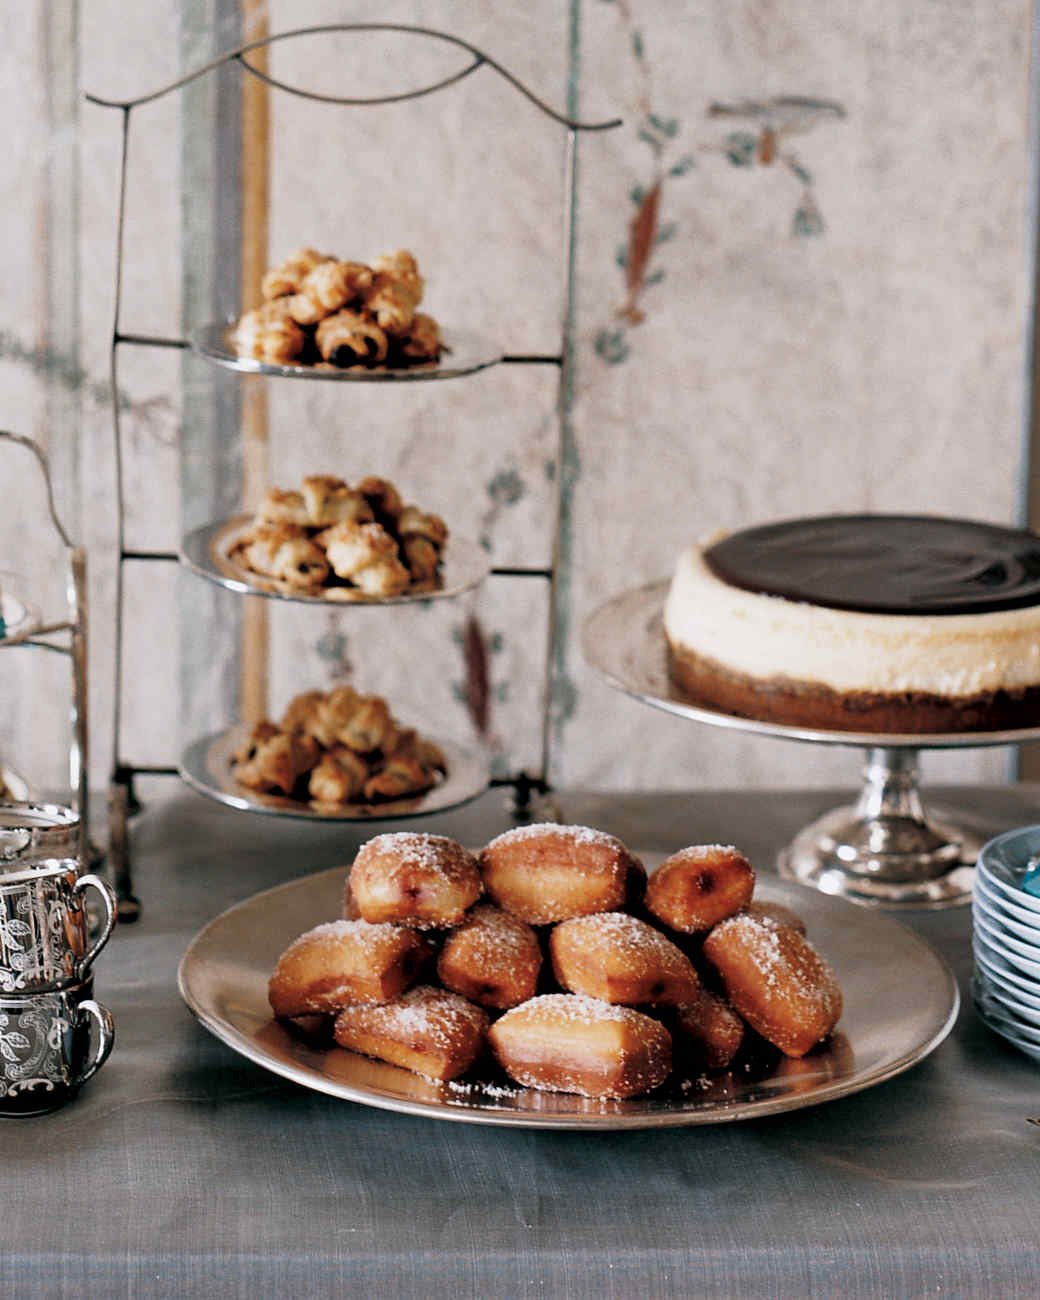 Cinnamon-Honey Doughnuts with Raspberry Jam Recipe | Martha Stewart